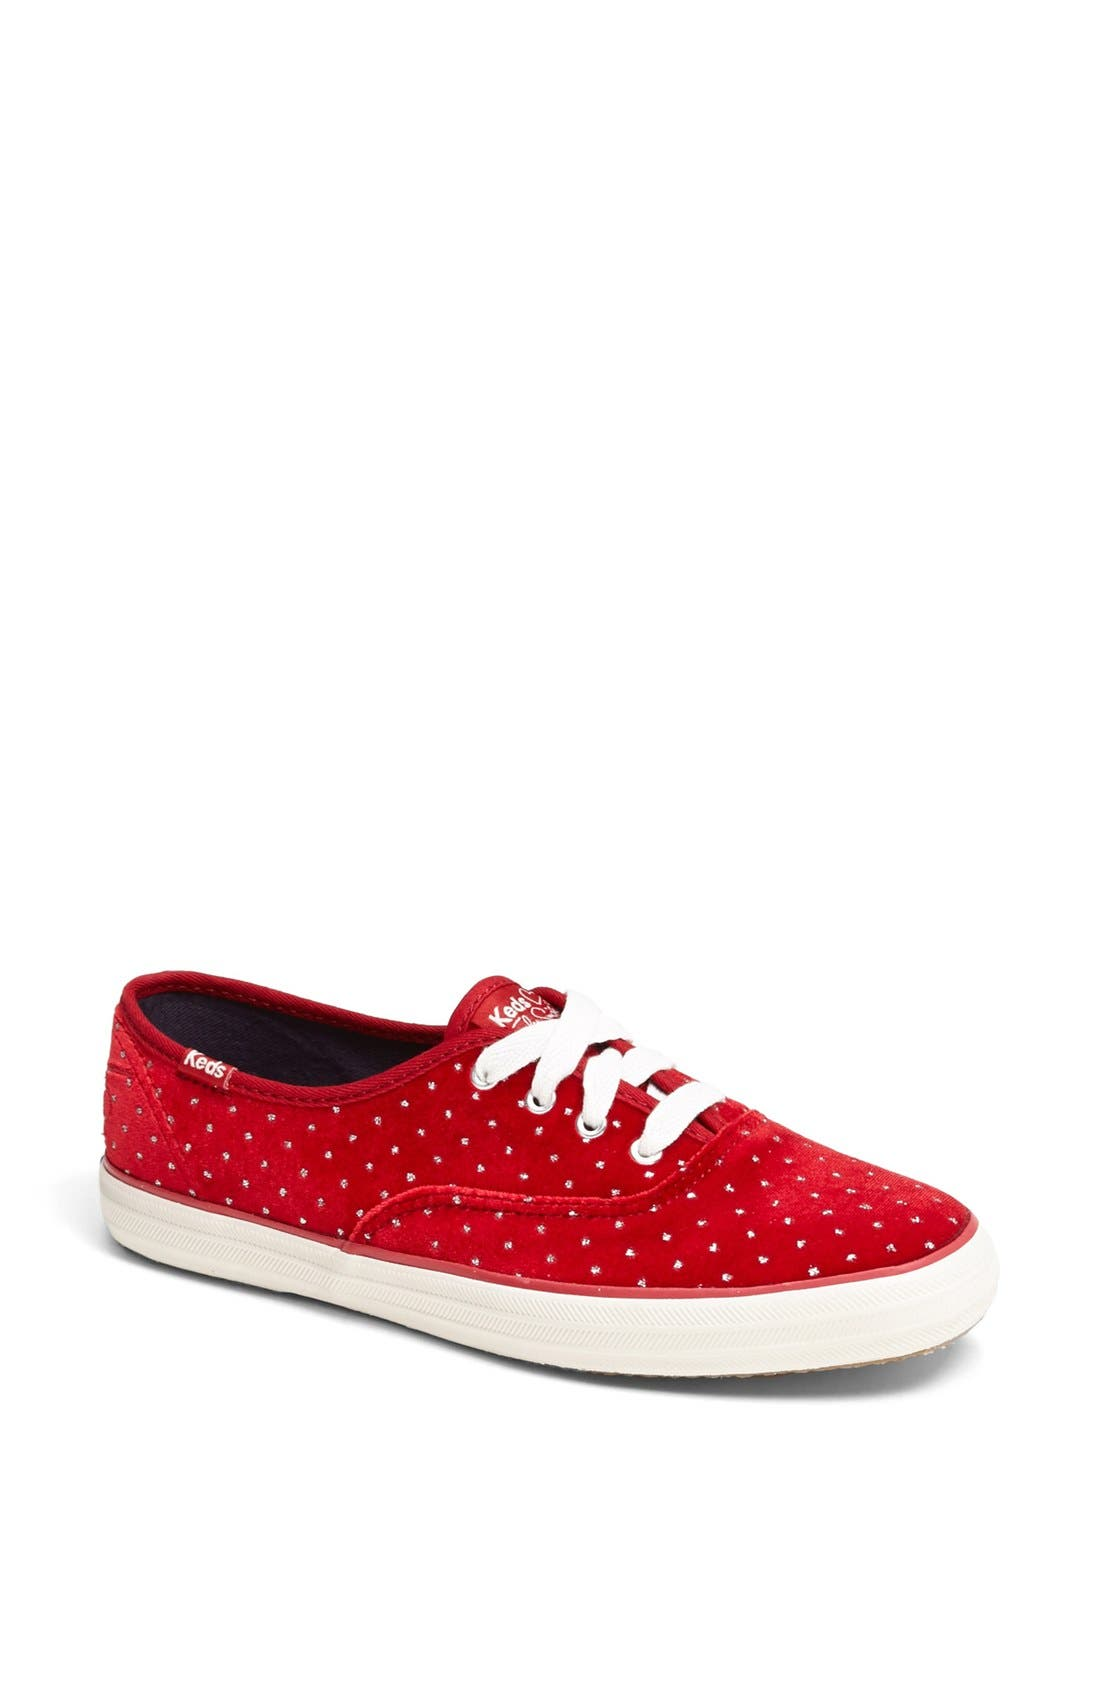 Alternate Image 1 Selected - Keds® Taylor Swift 'Velvet Glitter' Champion Sneaker